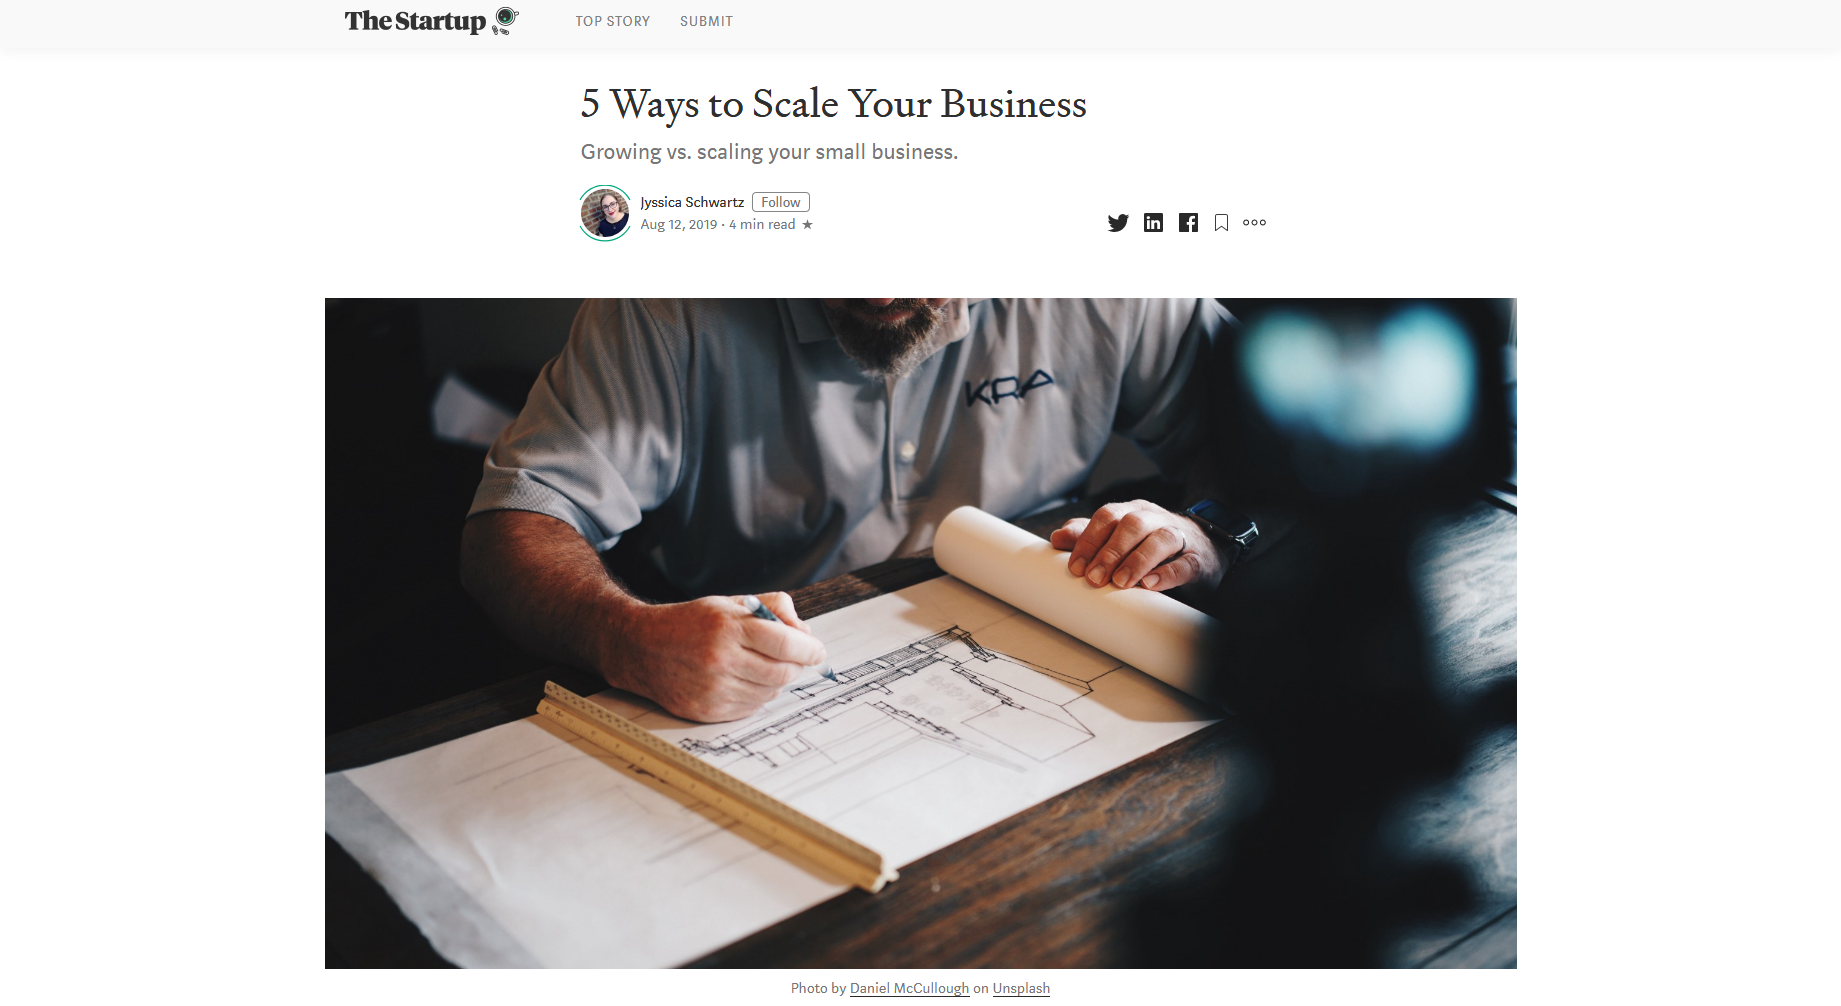 5 Ways to Scale Your Small Business — The Startup